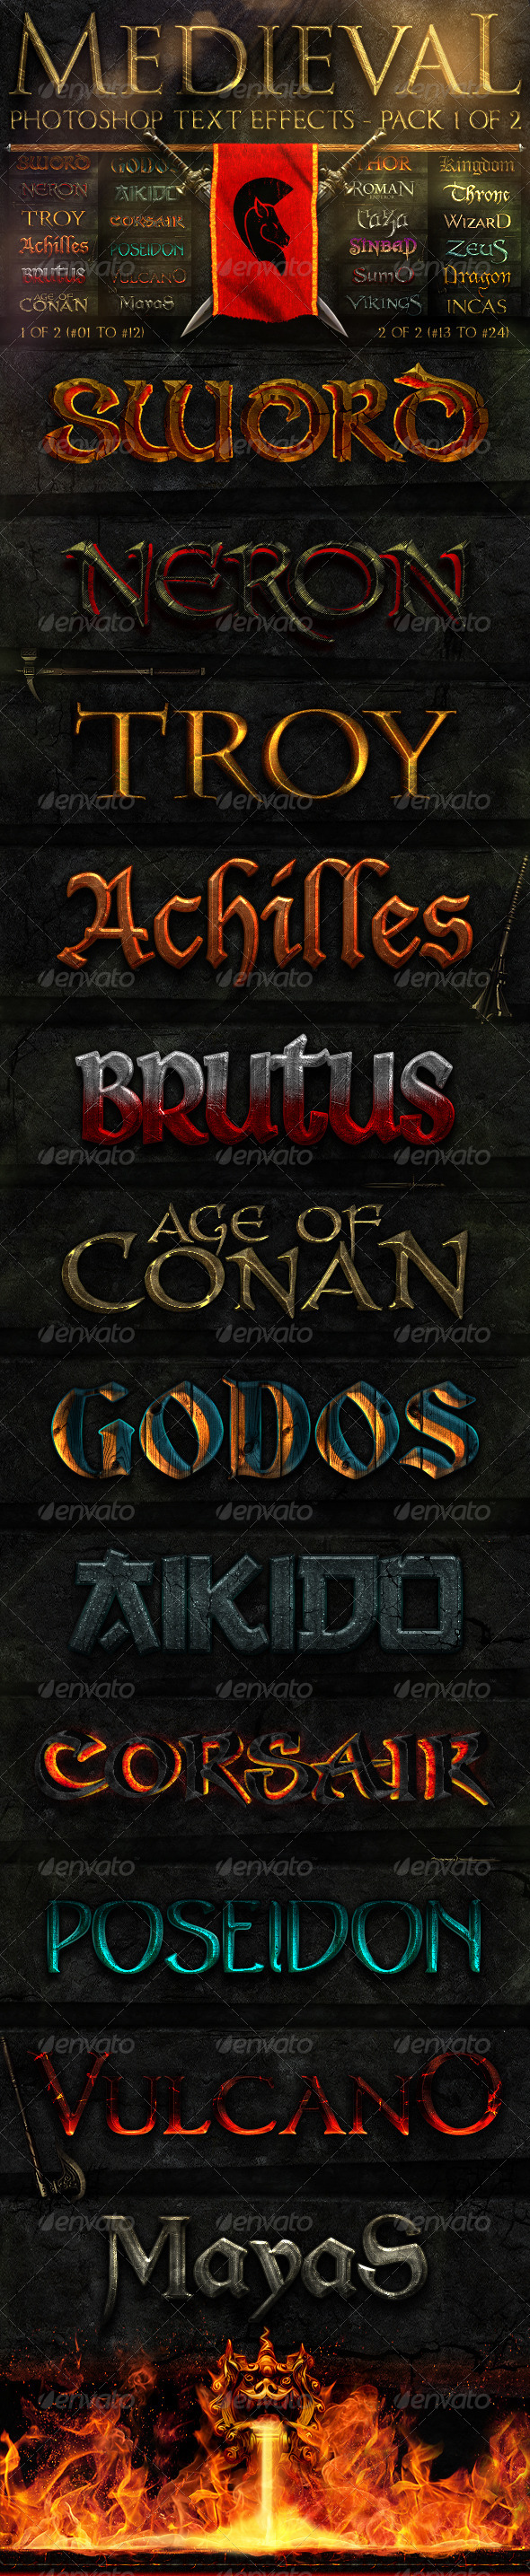 Medieval Photoshop Text Effects 1 of 2 - Text Effects Styles